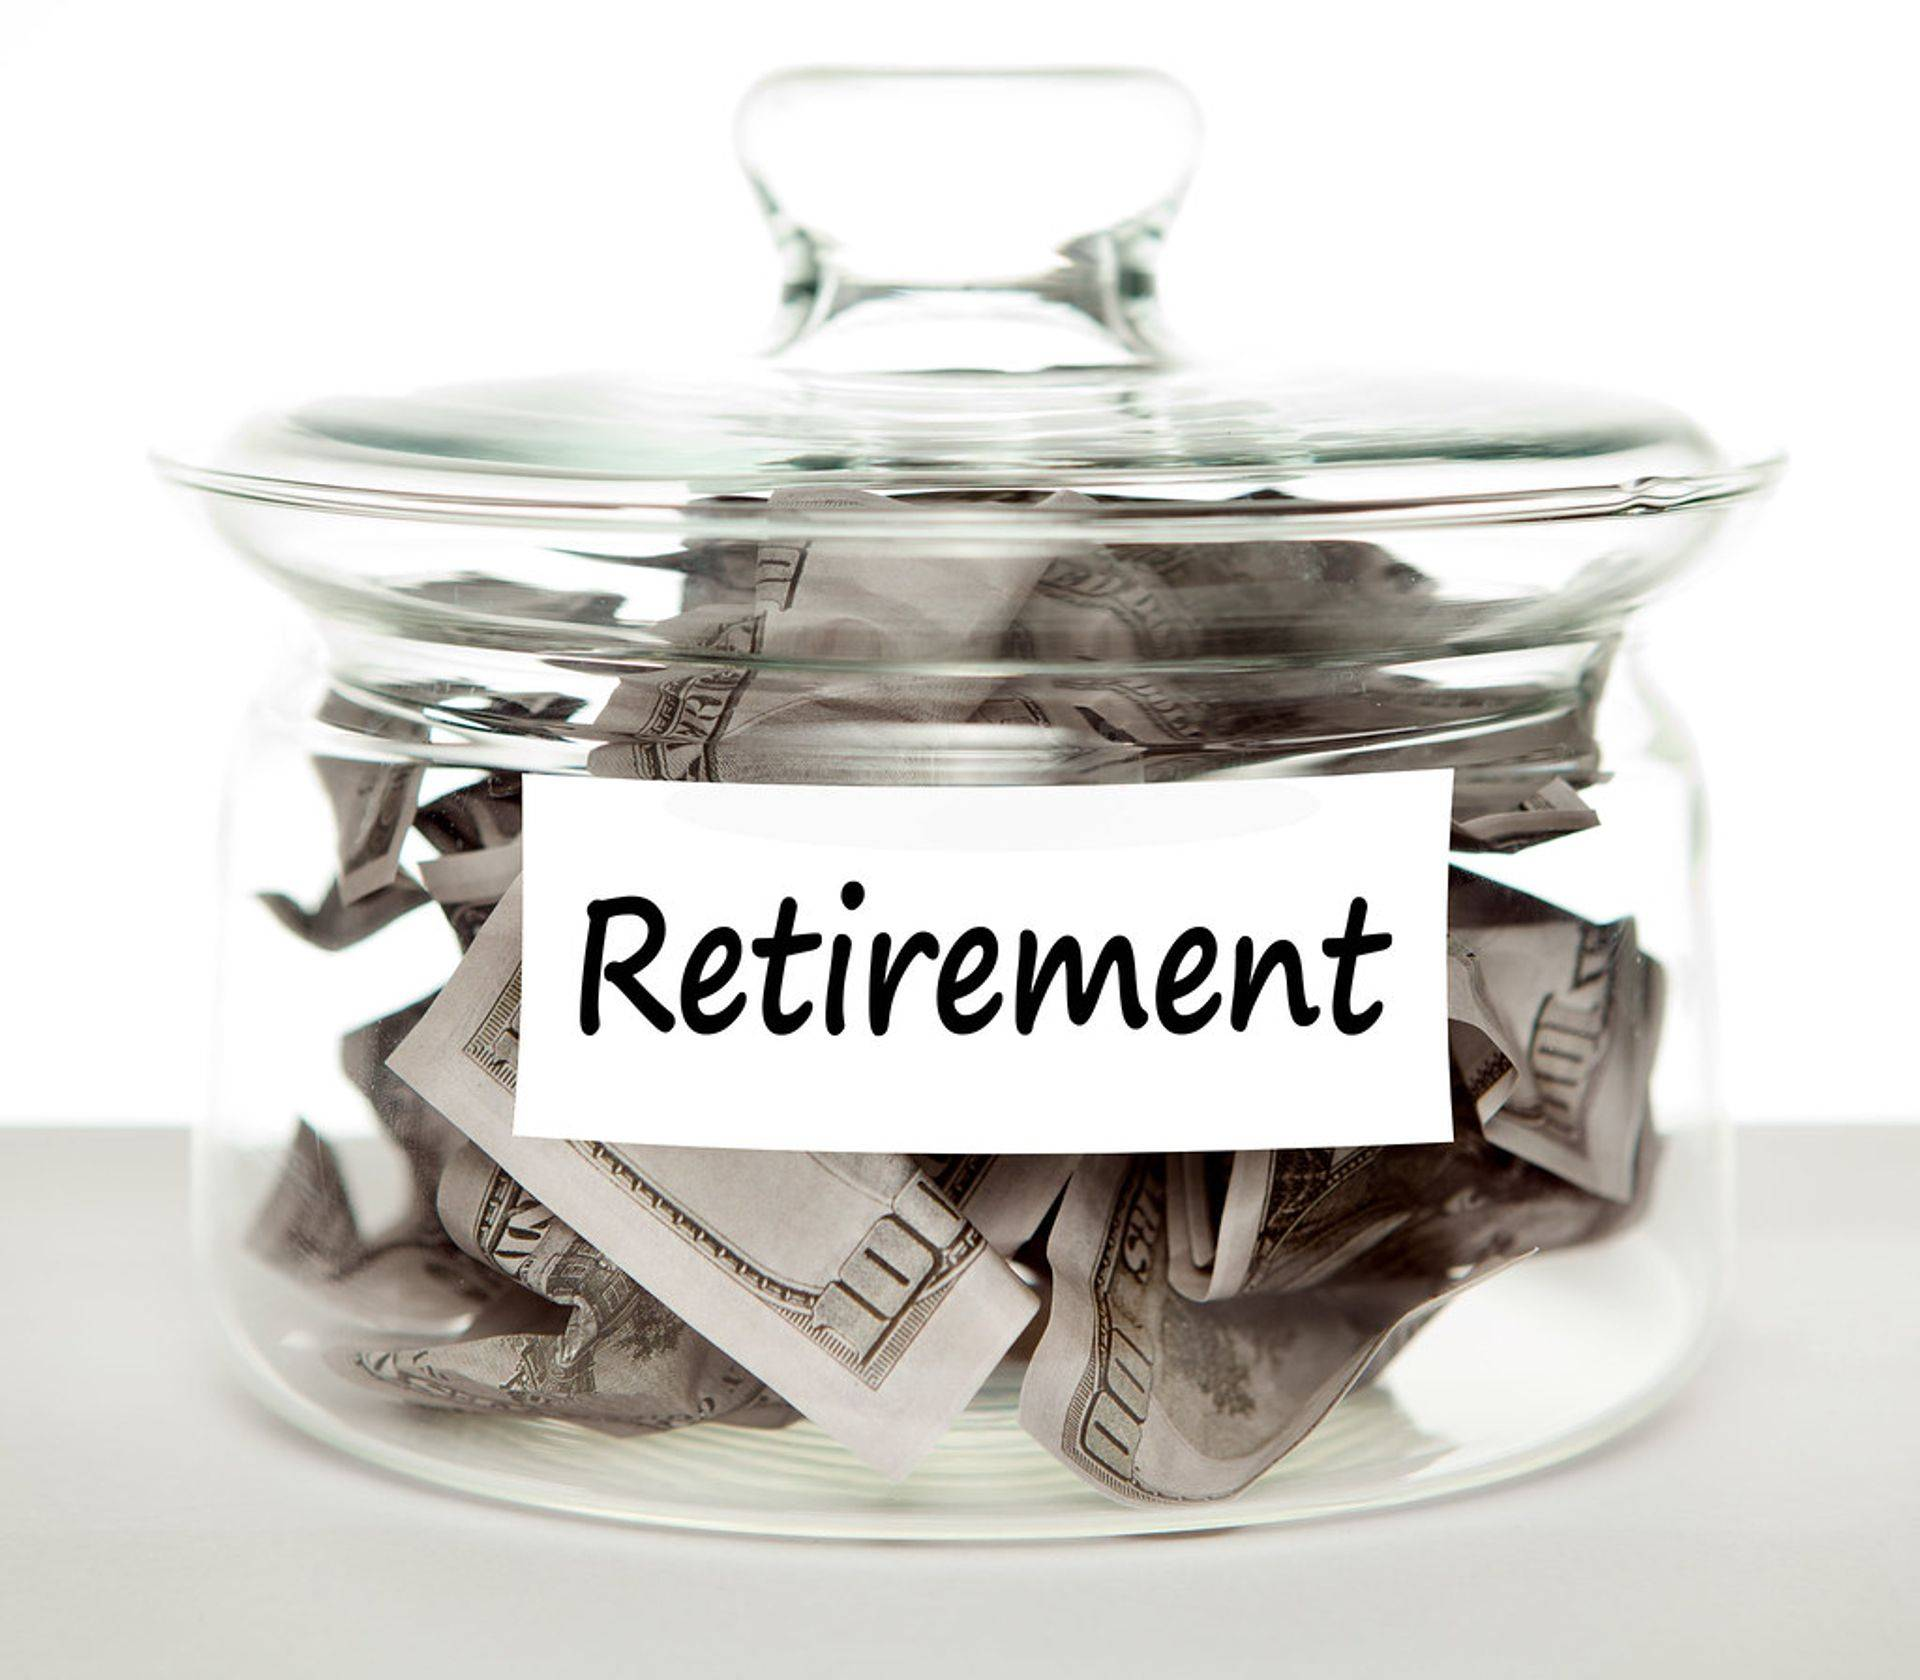 Retirement Planning, Saving